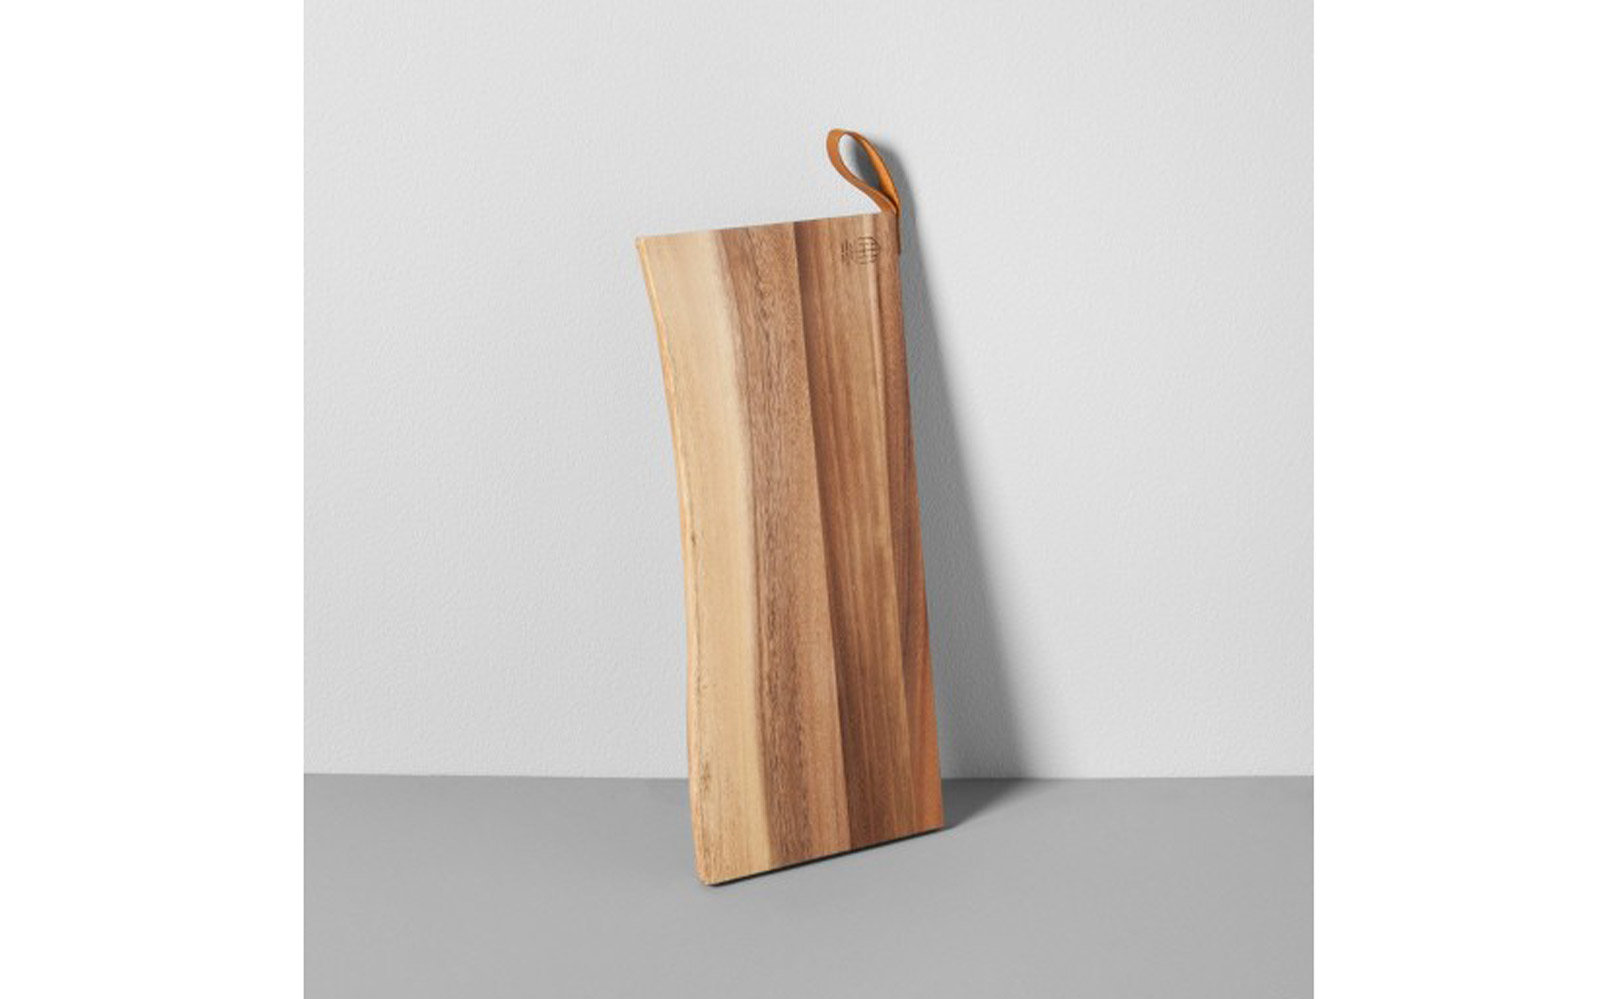 Hearth & Hand with Magnolia: Wood Cutting Board